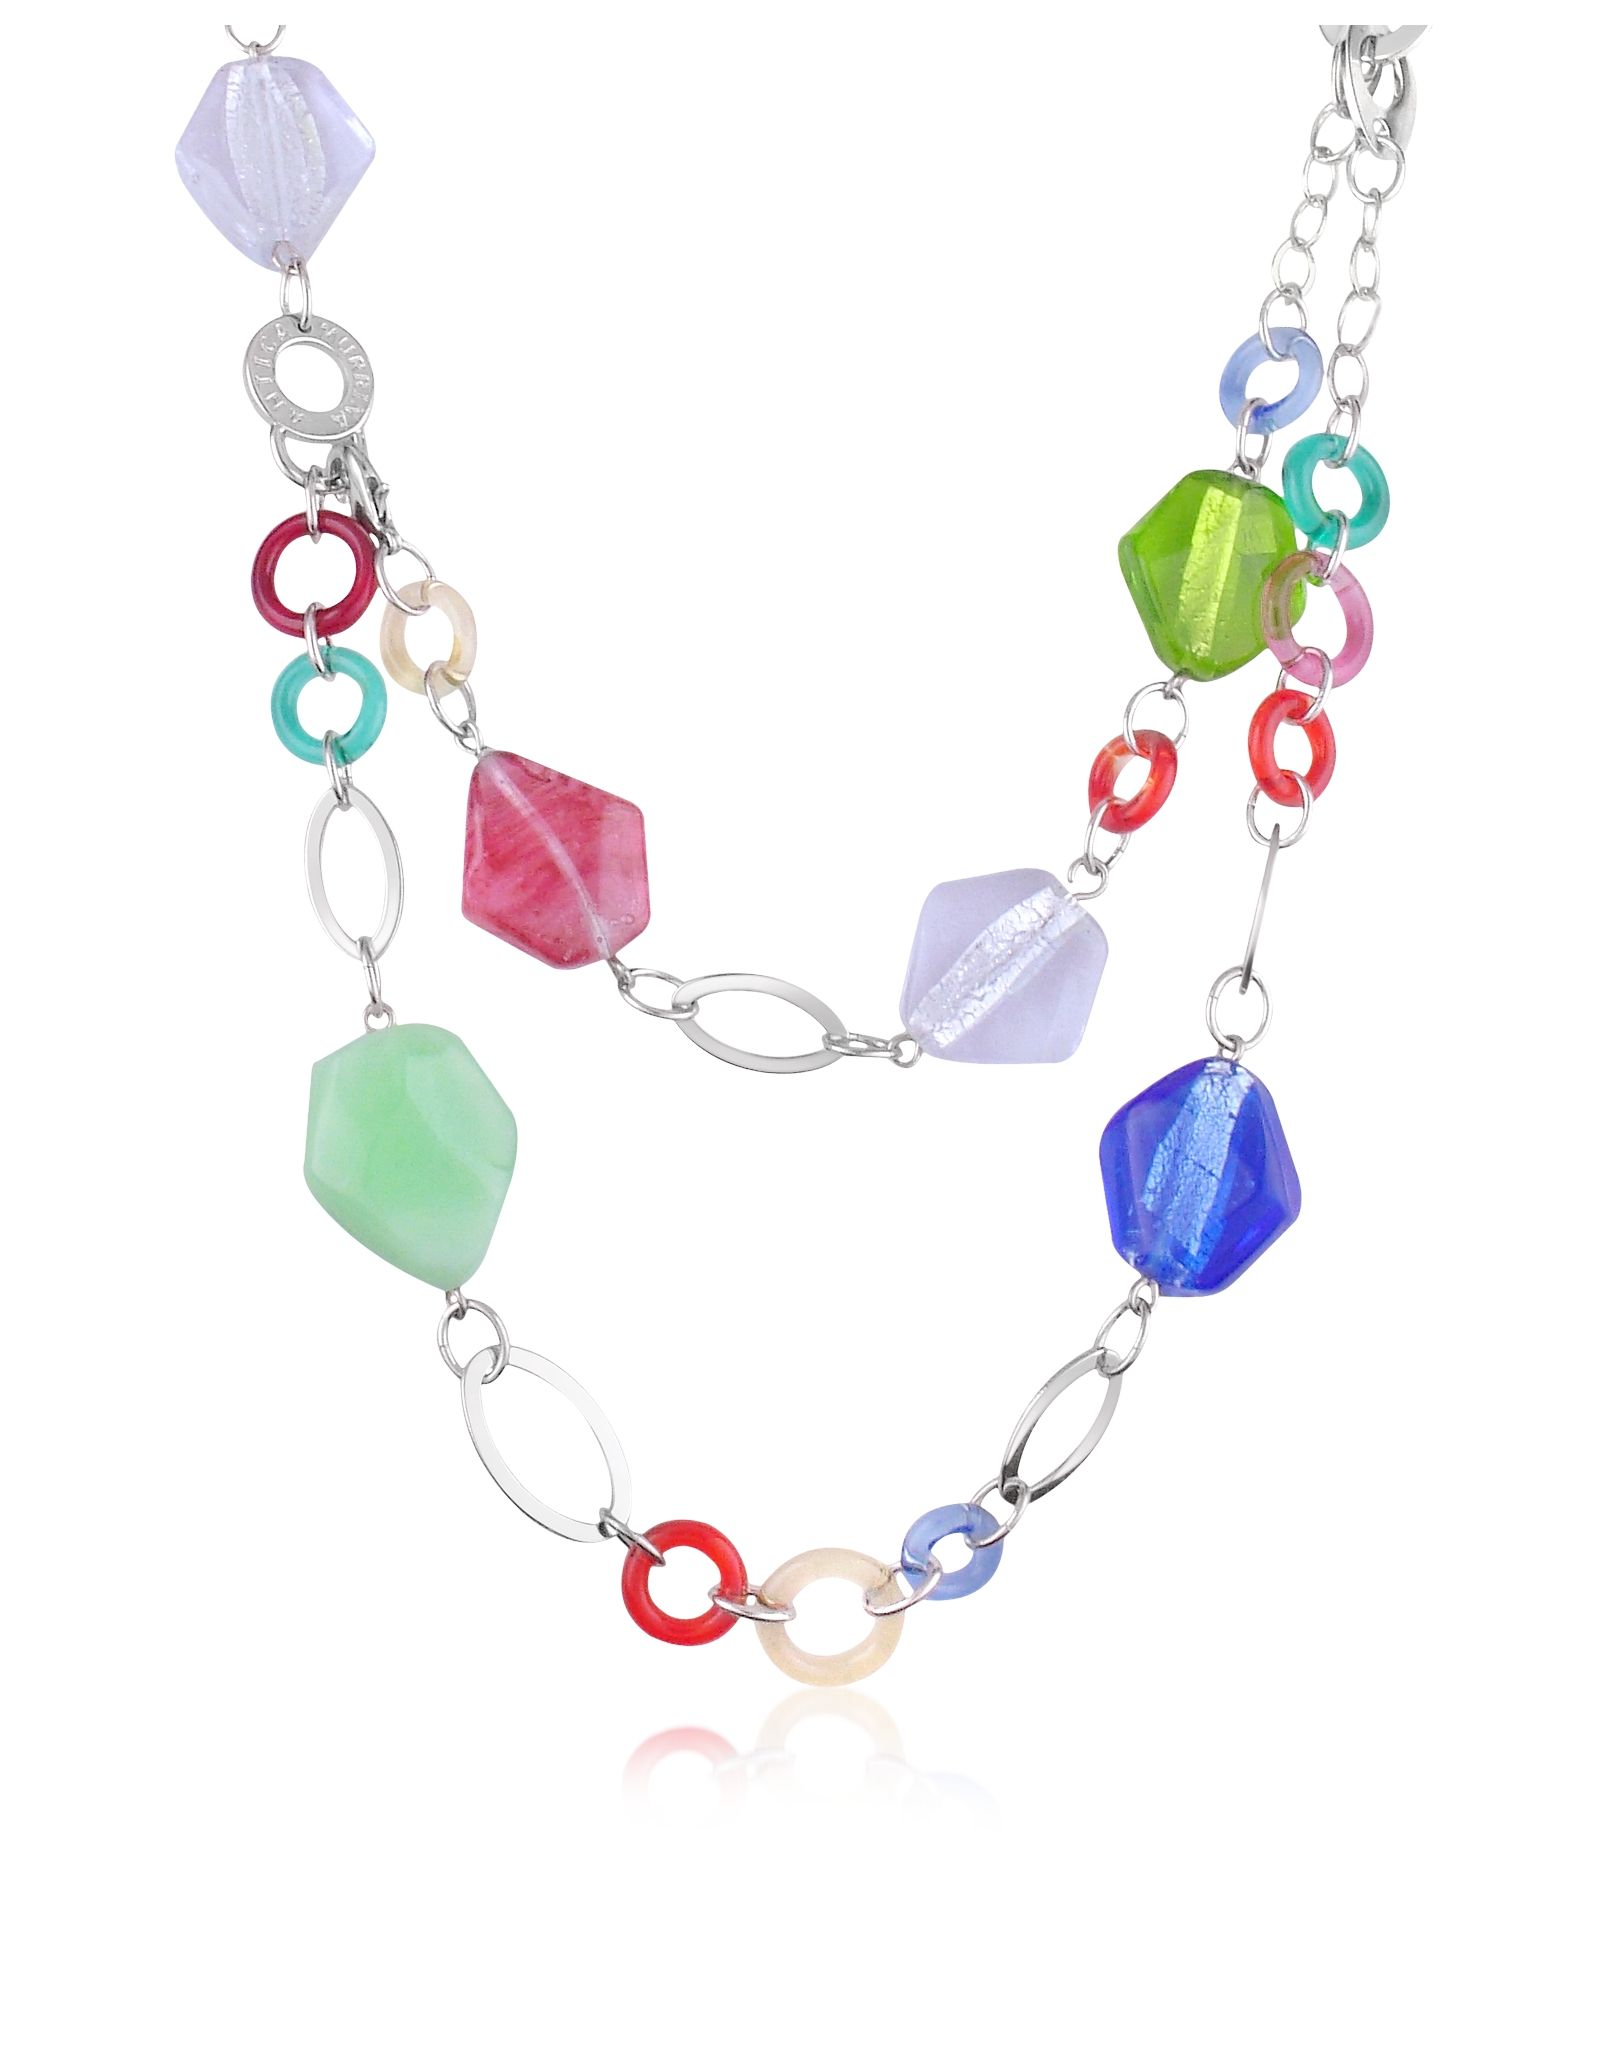 Murano Glass and Chain Necklace and Bracelet